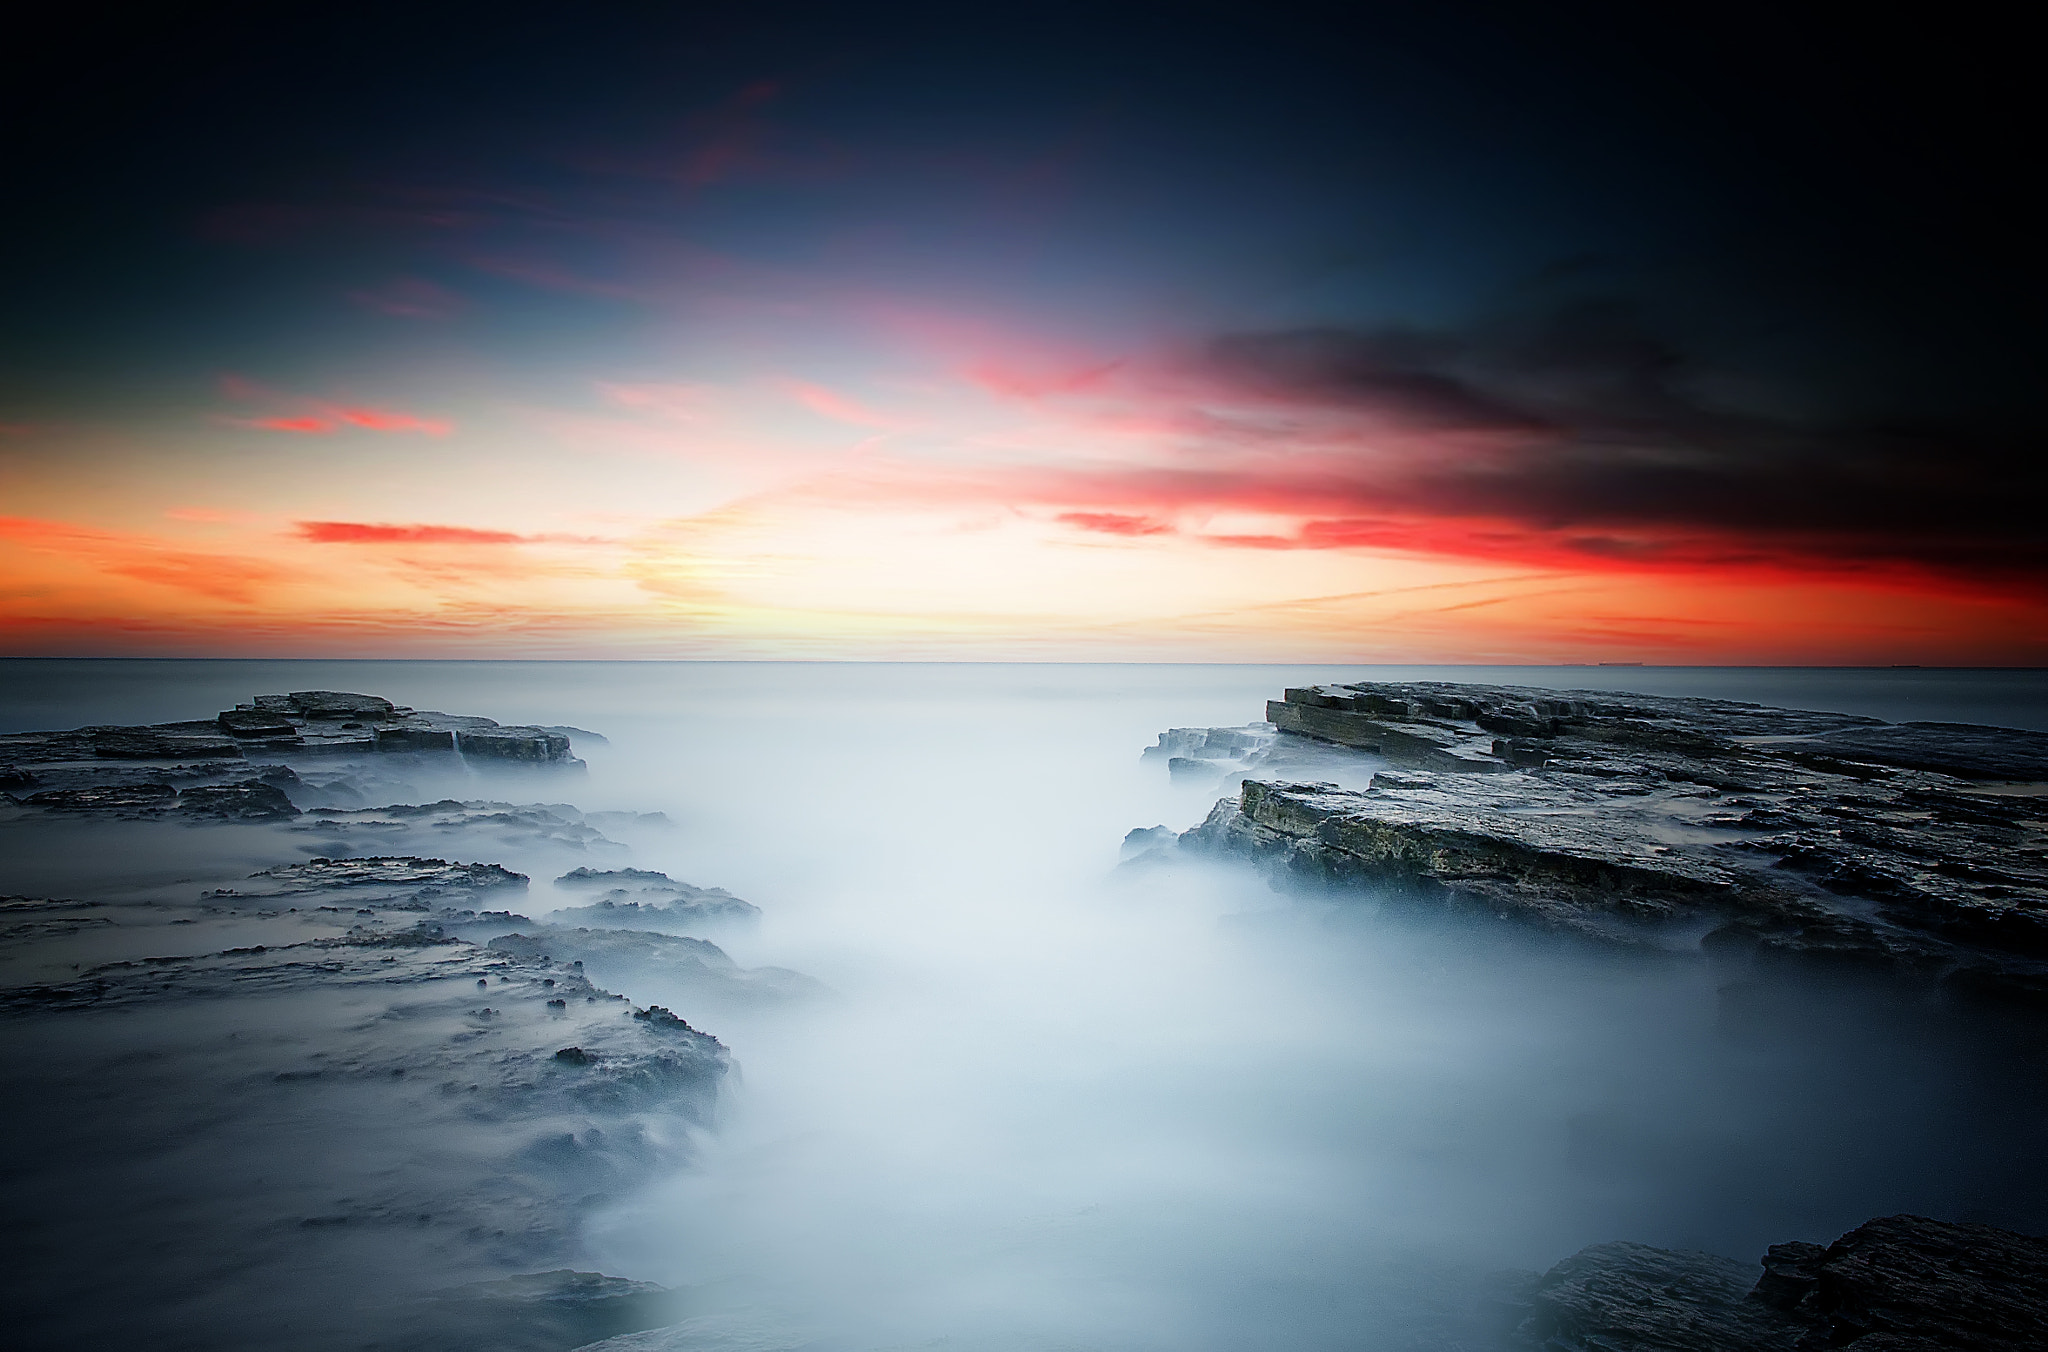 Photograph Ethereal Dream by Denz Bocasan on 500px